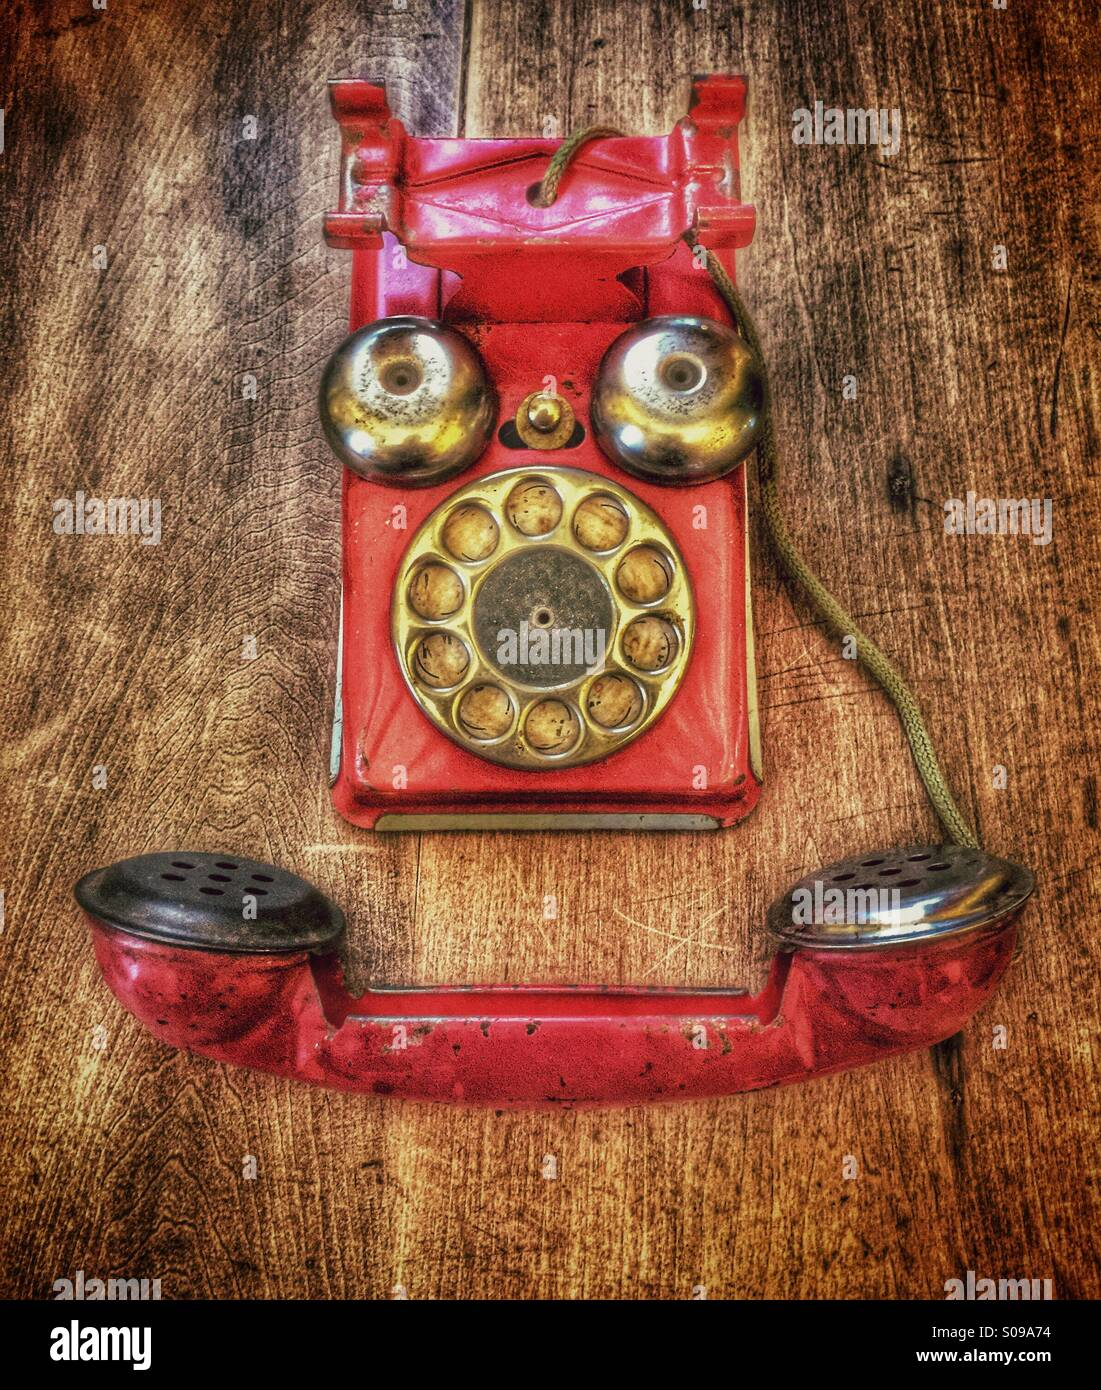 Vintage red toy telephone set to look like a smiling face. - Stock Image